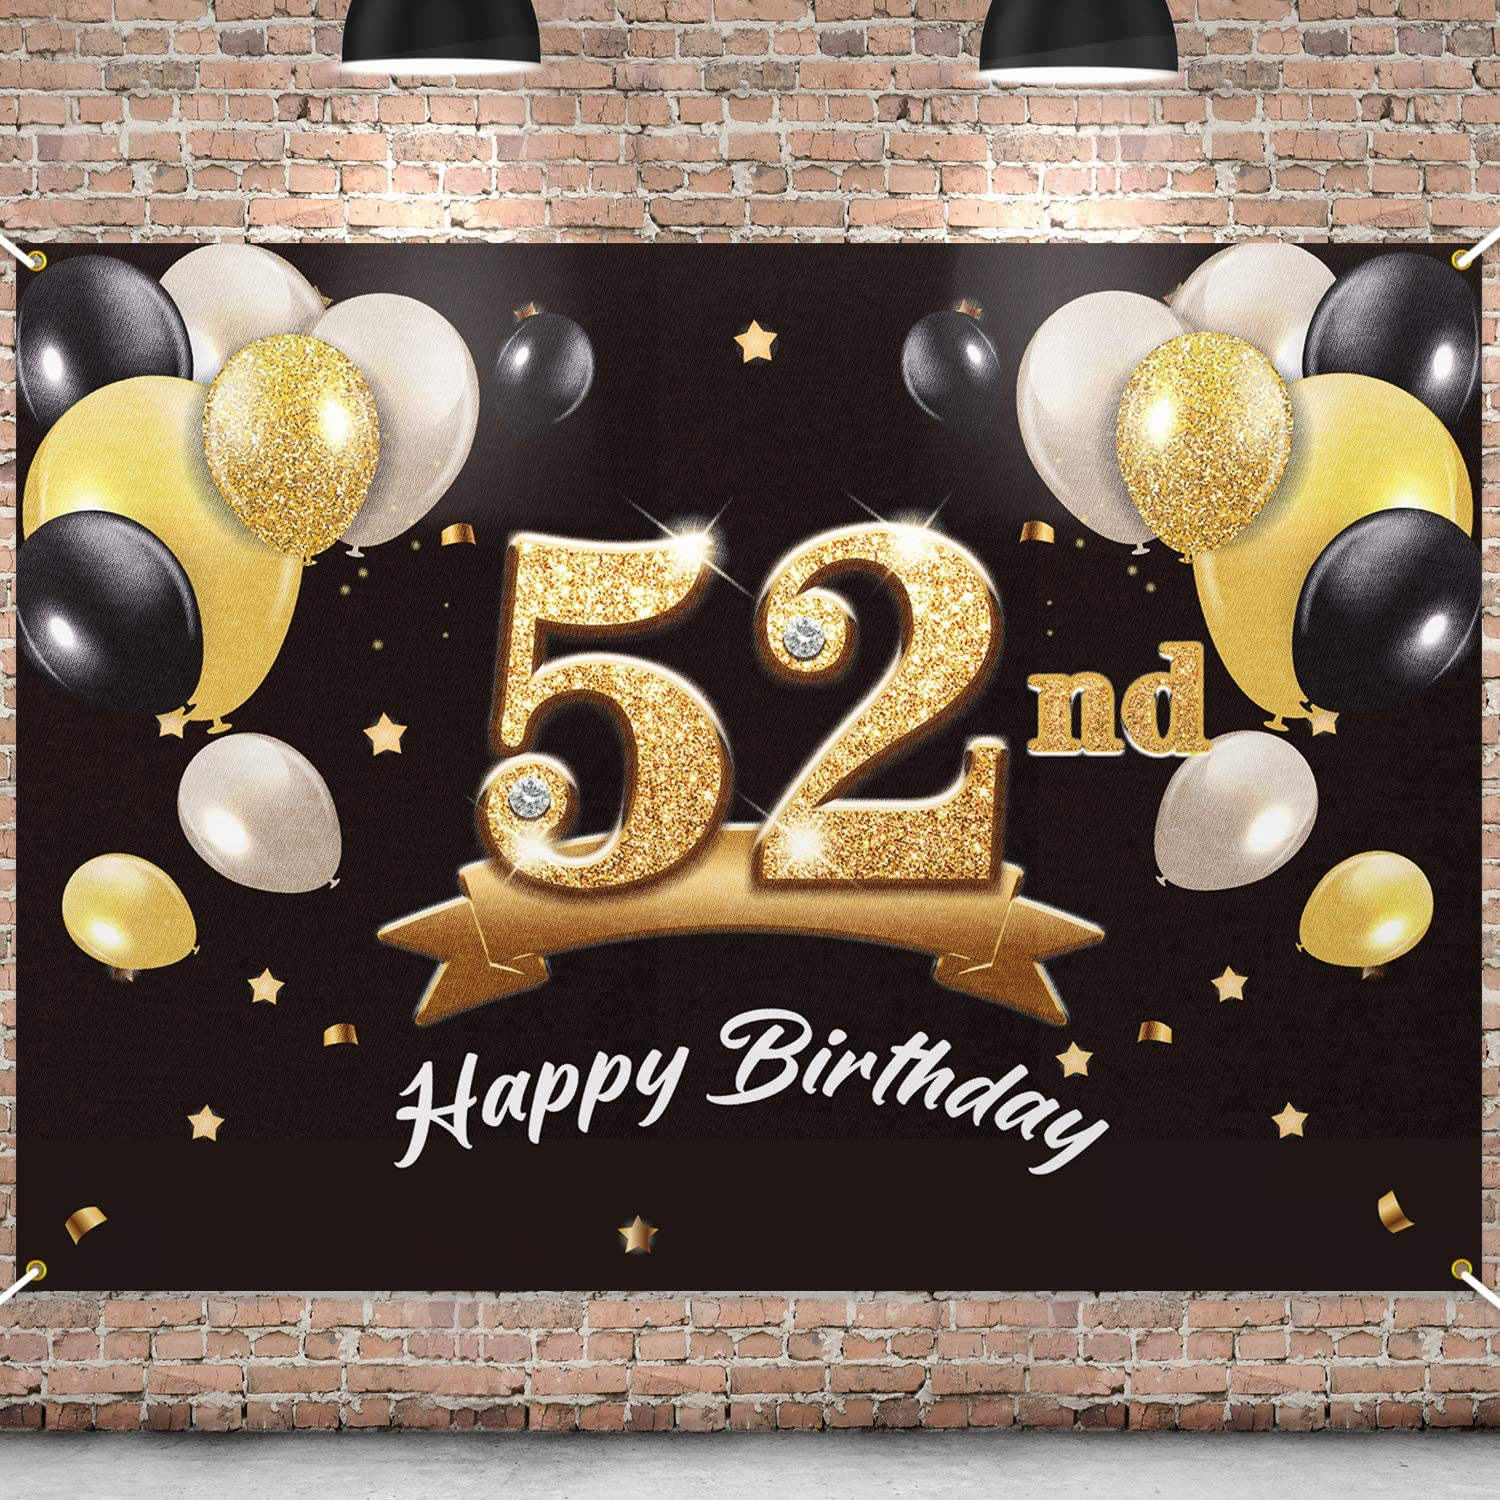 New Free Shipping PAKBOOM Very popular! Happy 52nd Birthday Banner Backdrop - Party 52